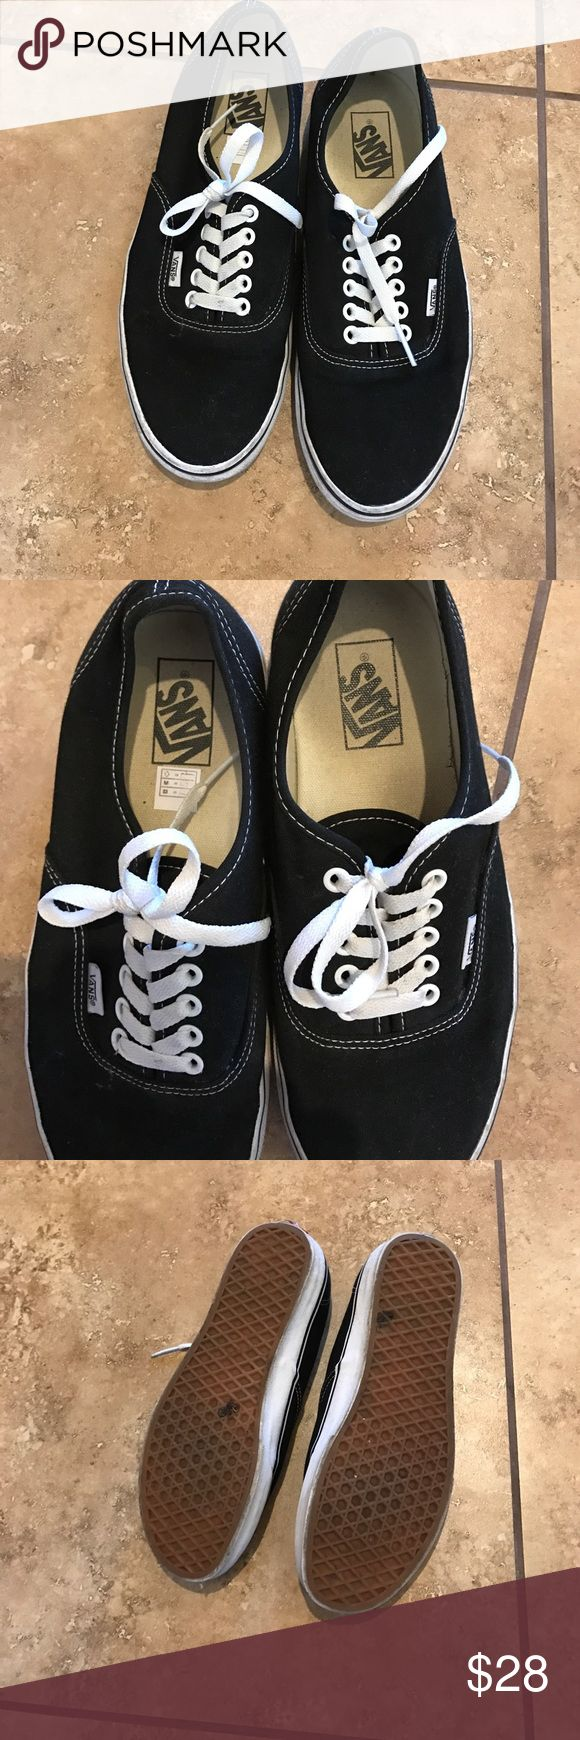 Vans classic black Only worn a few times. In great condition Vans Shoes Sneakers